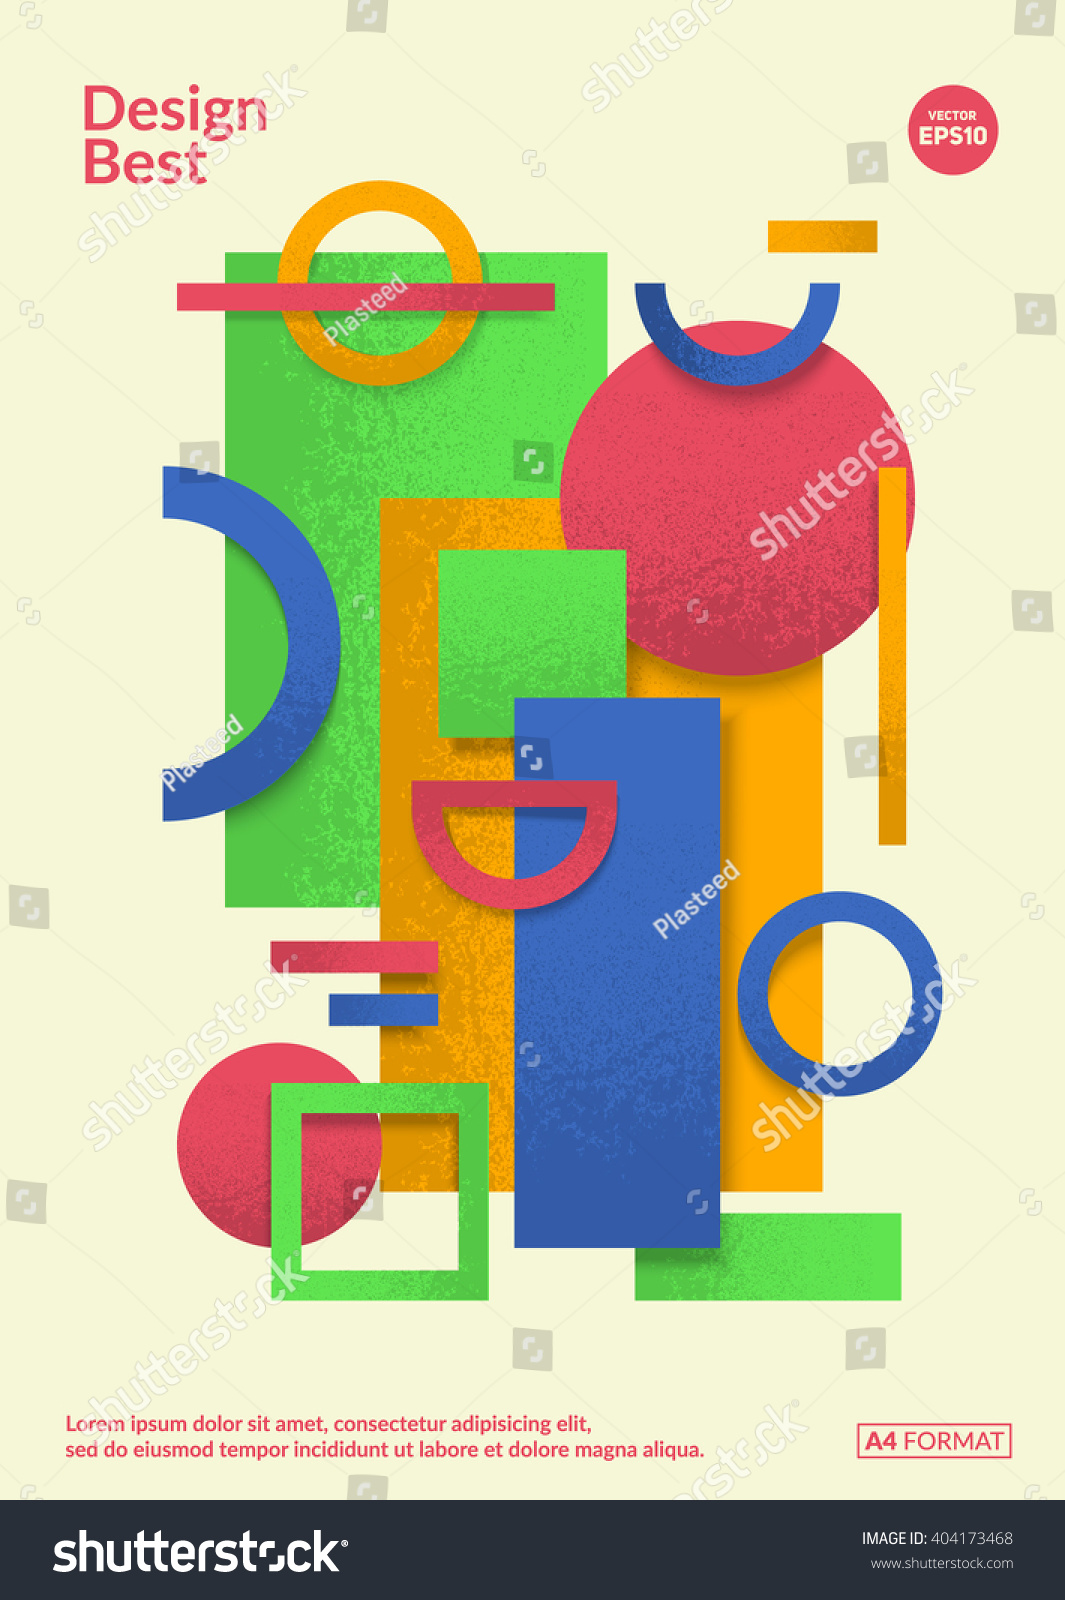 static design poster simple colorful geometric stock vector (royalty